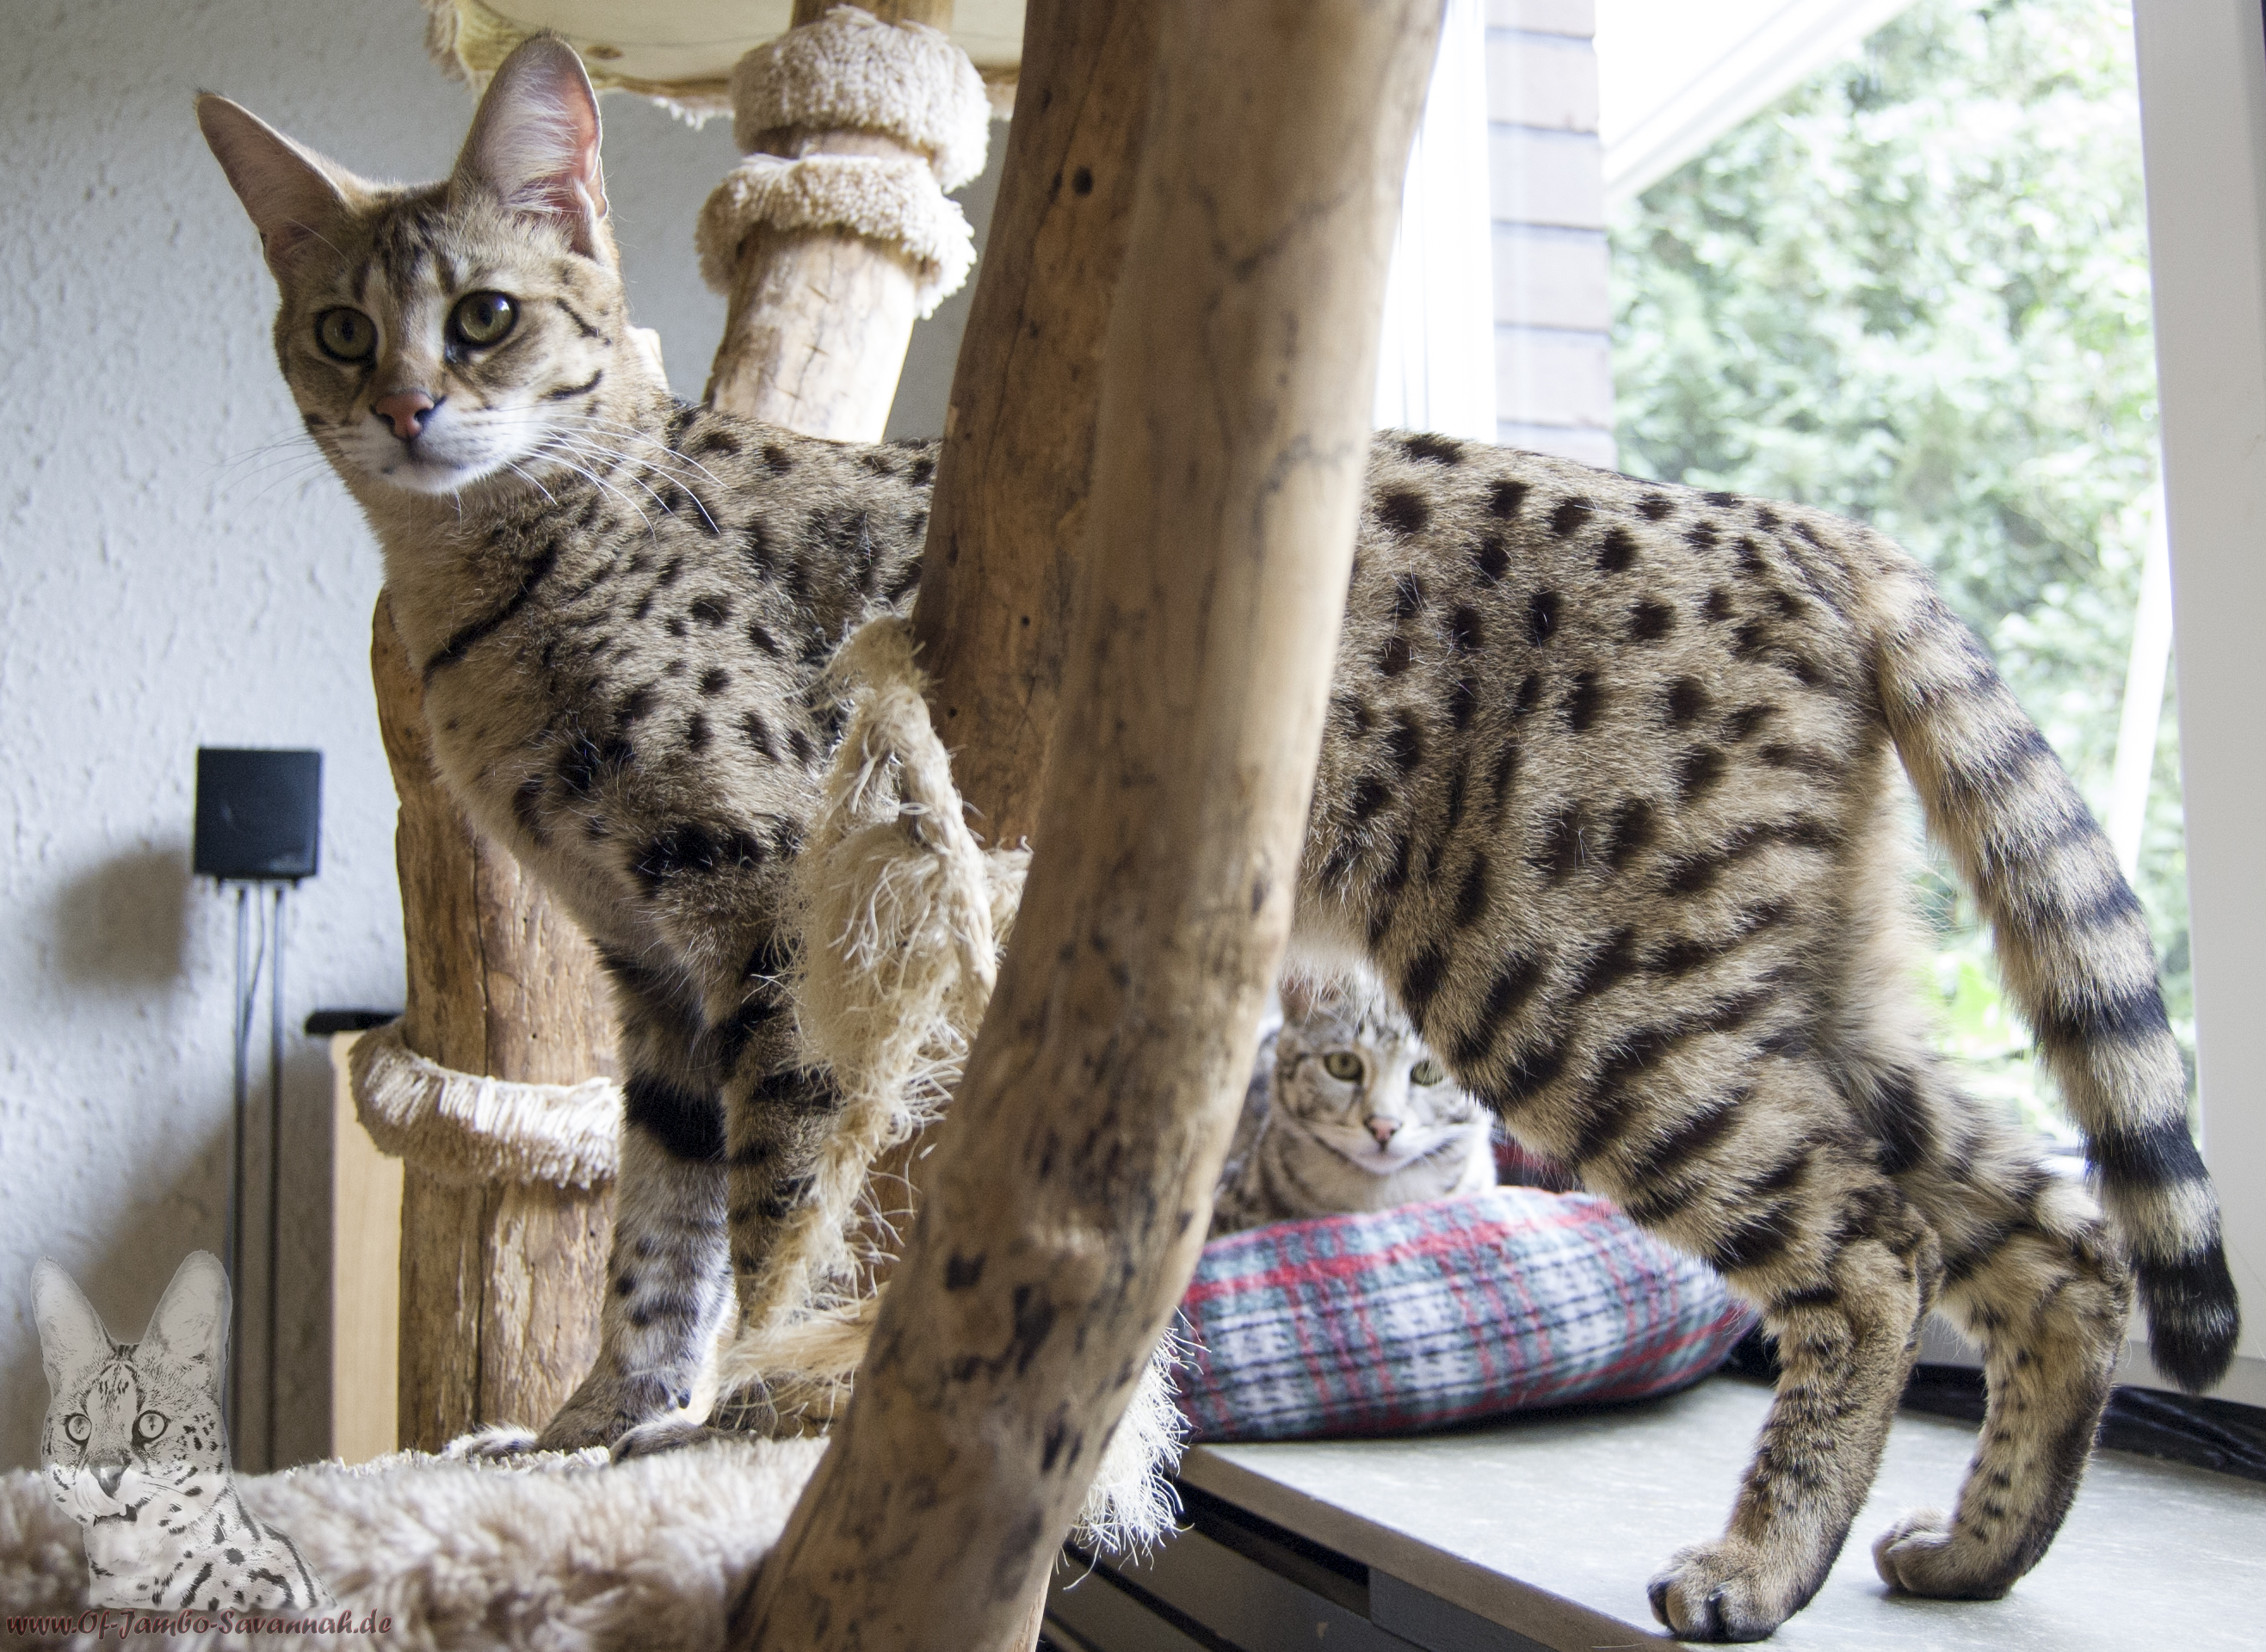 F1 Savannah Cat, F1 Savannahzucht, Angela Hönig, Savannahkatzen, Savannahcats, Savannahcat, F1,